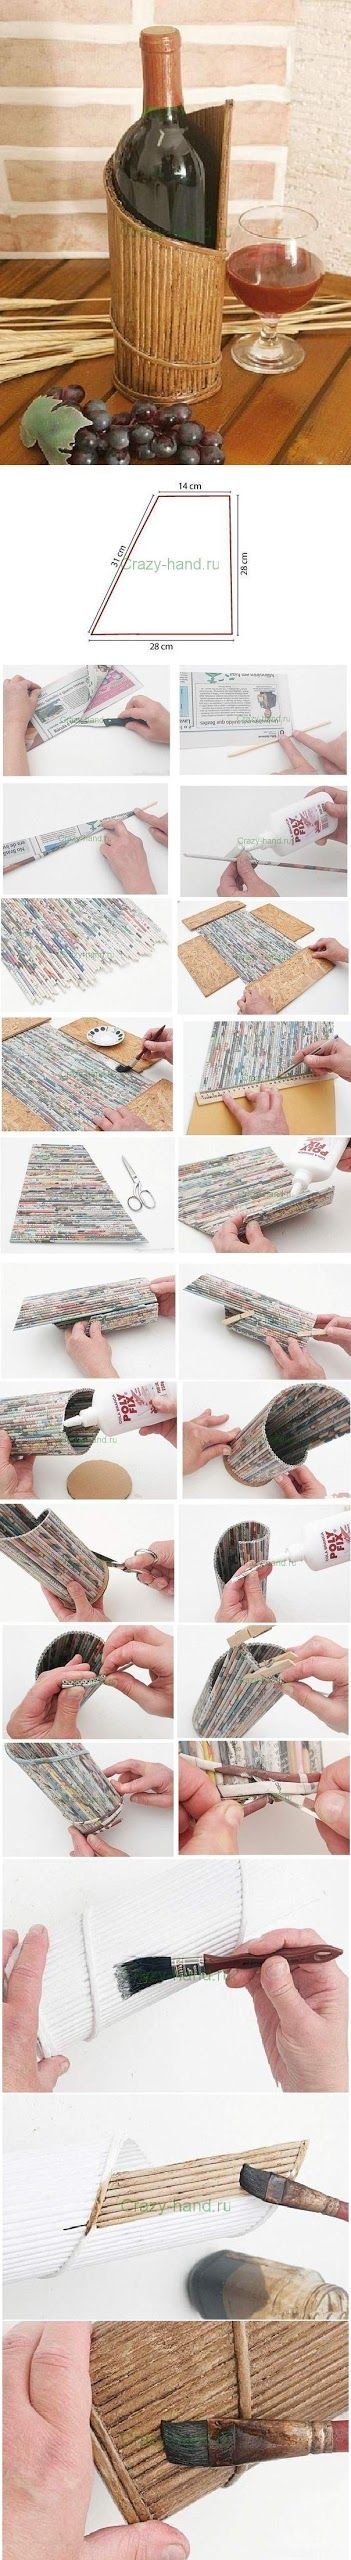 15 Home DIY Projects